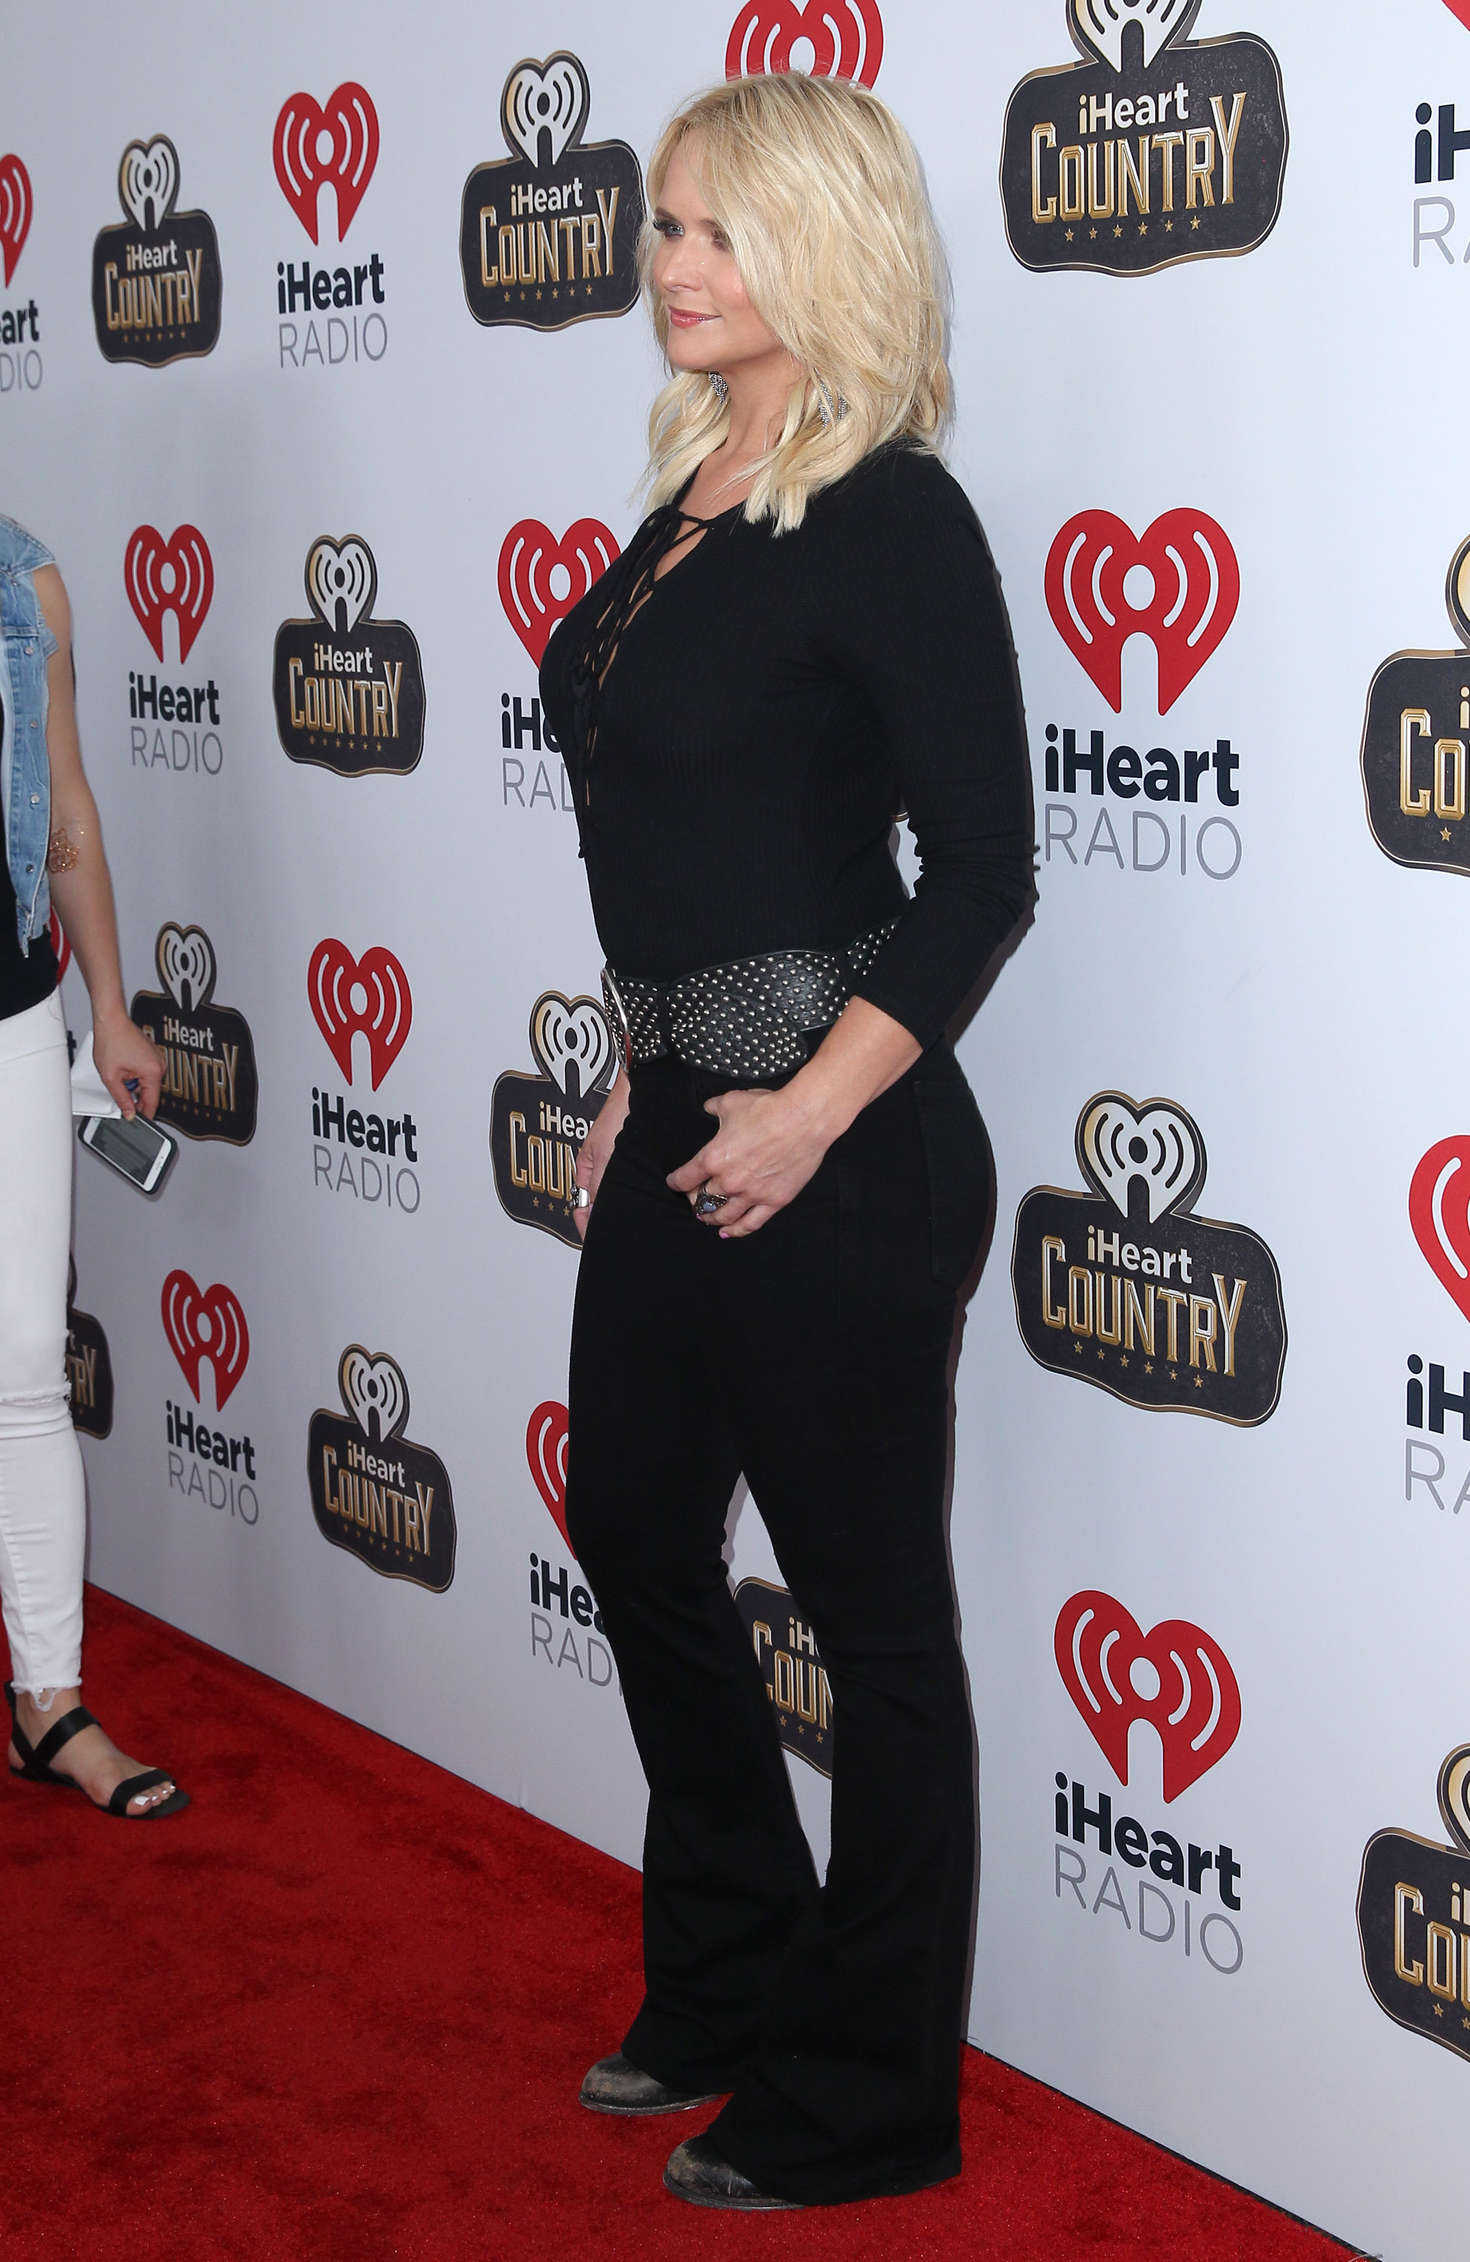 Miranda Lambert iHeart Country Radio Music Festival in Austin